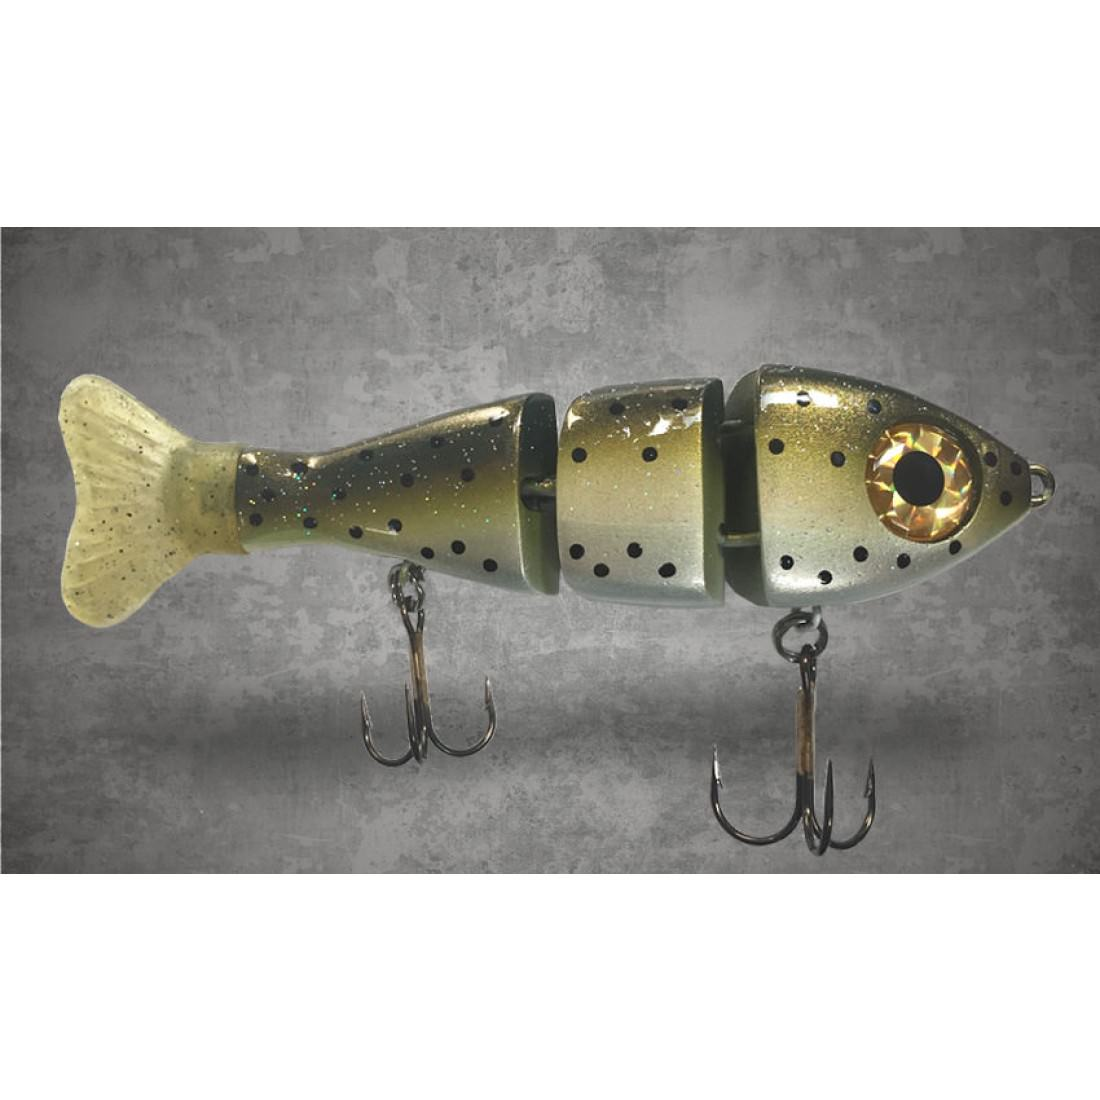 Triple Trout Stubby Swimbait in Light Trout Heavy ROF 5 inch